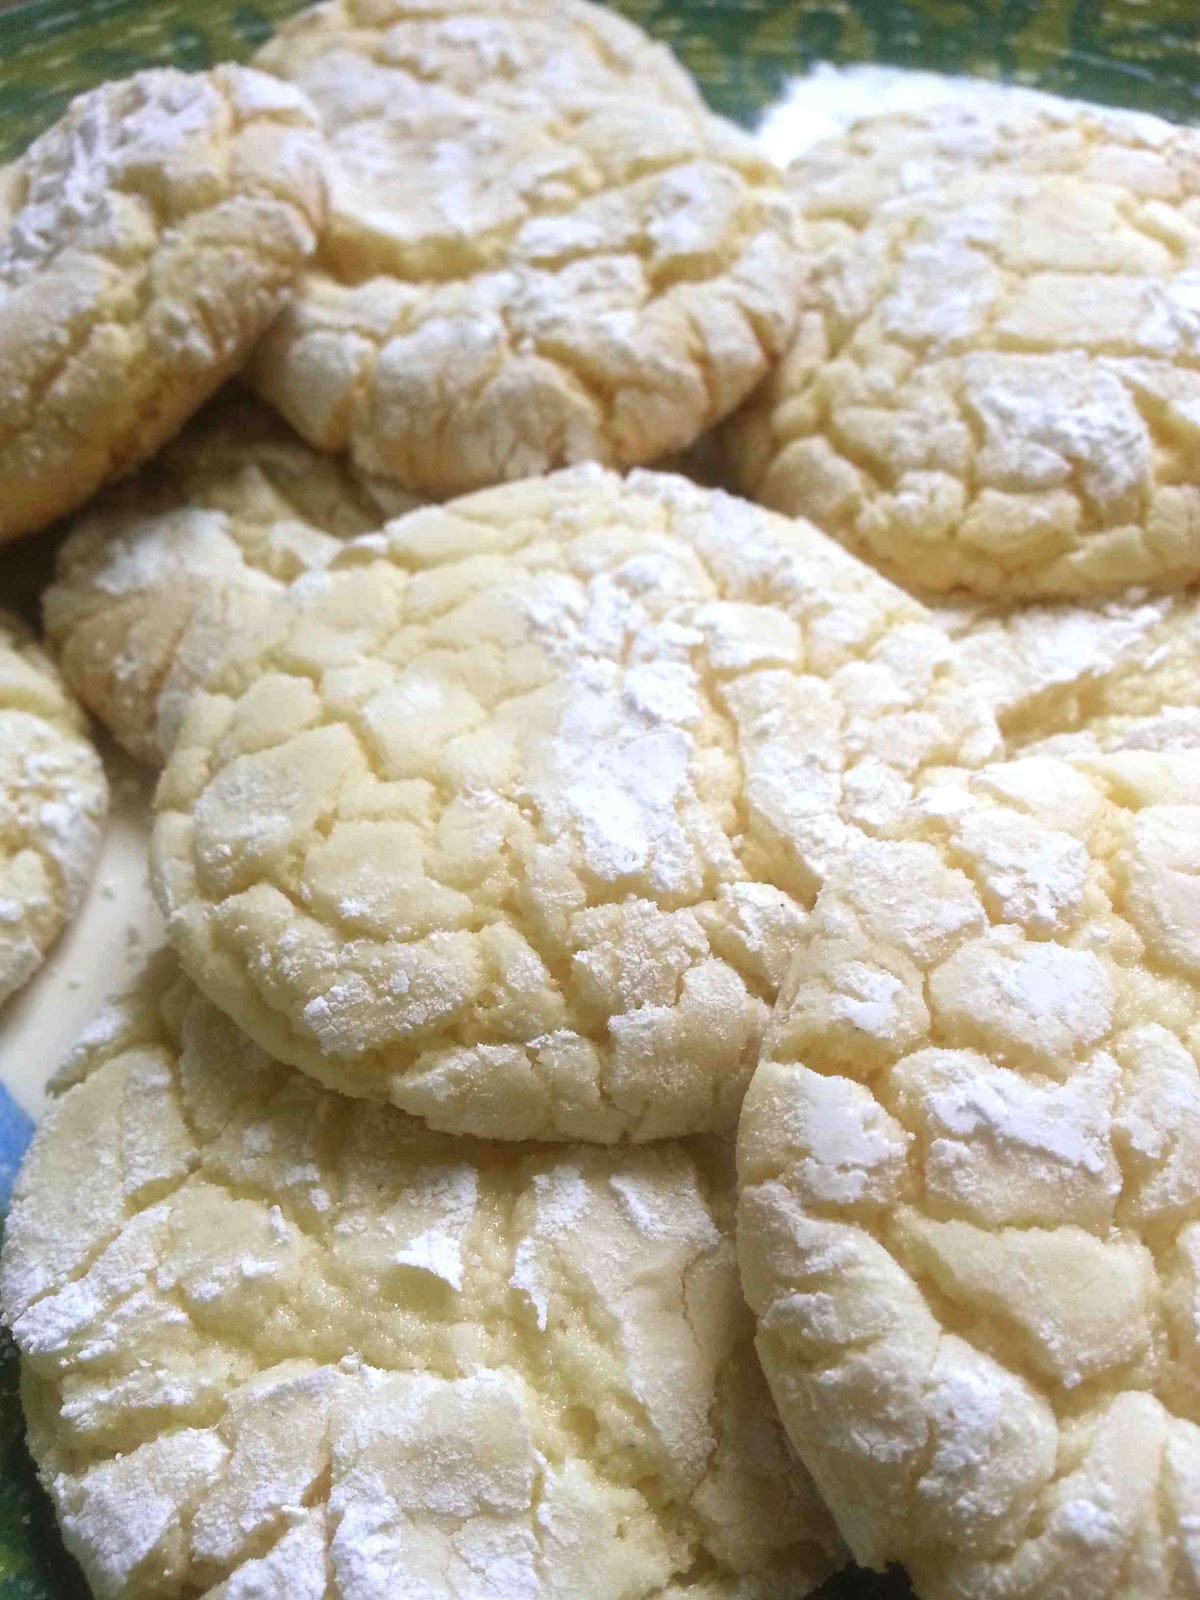 Sugar Free Cookies Made With Cake Mix